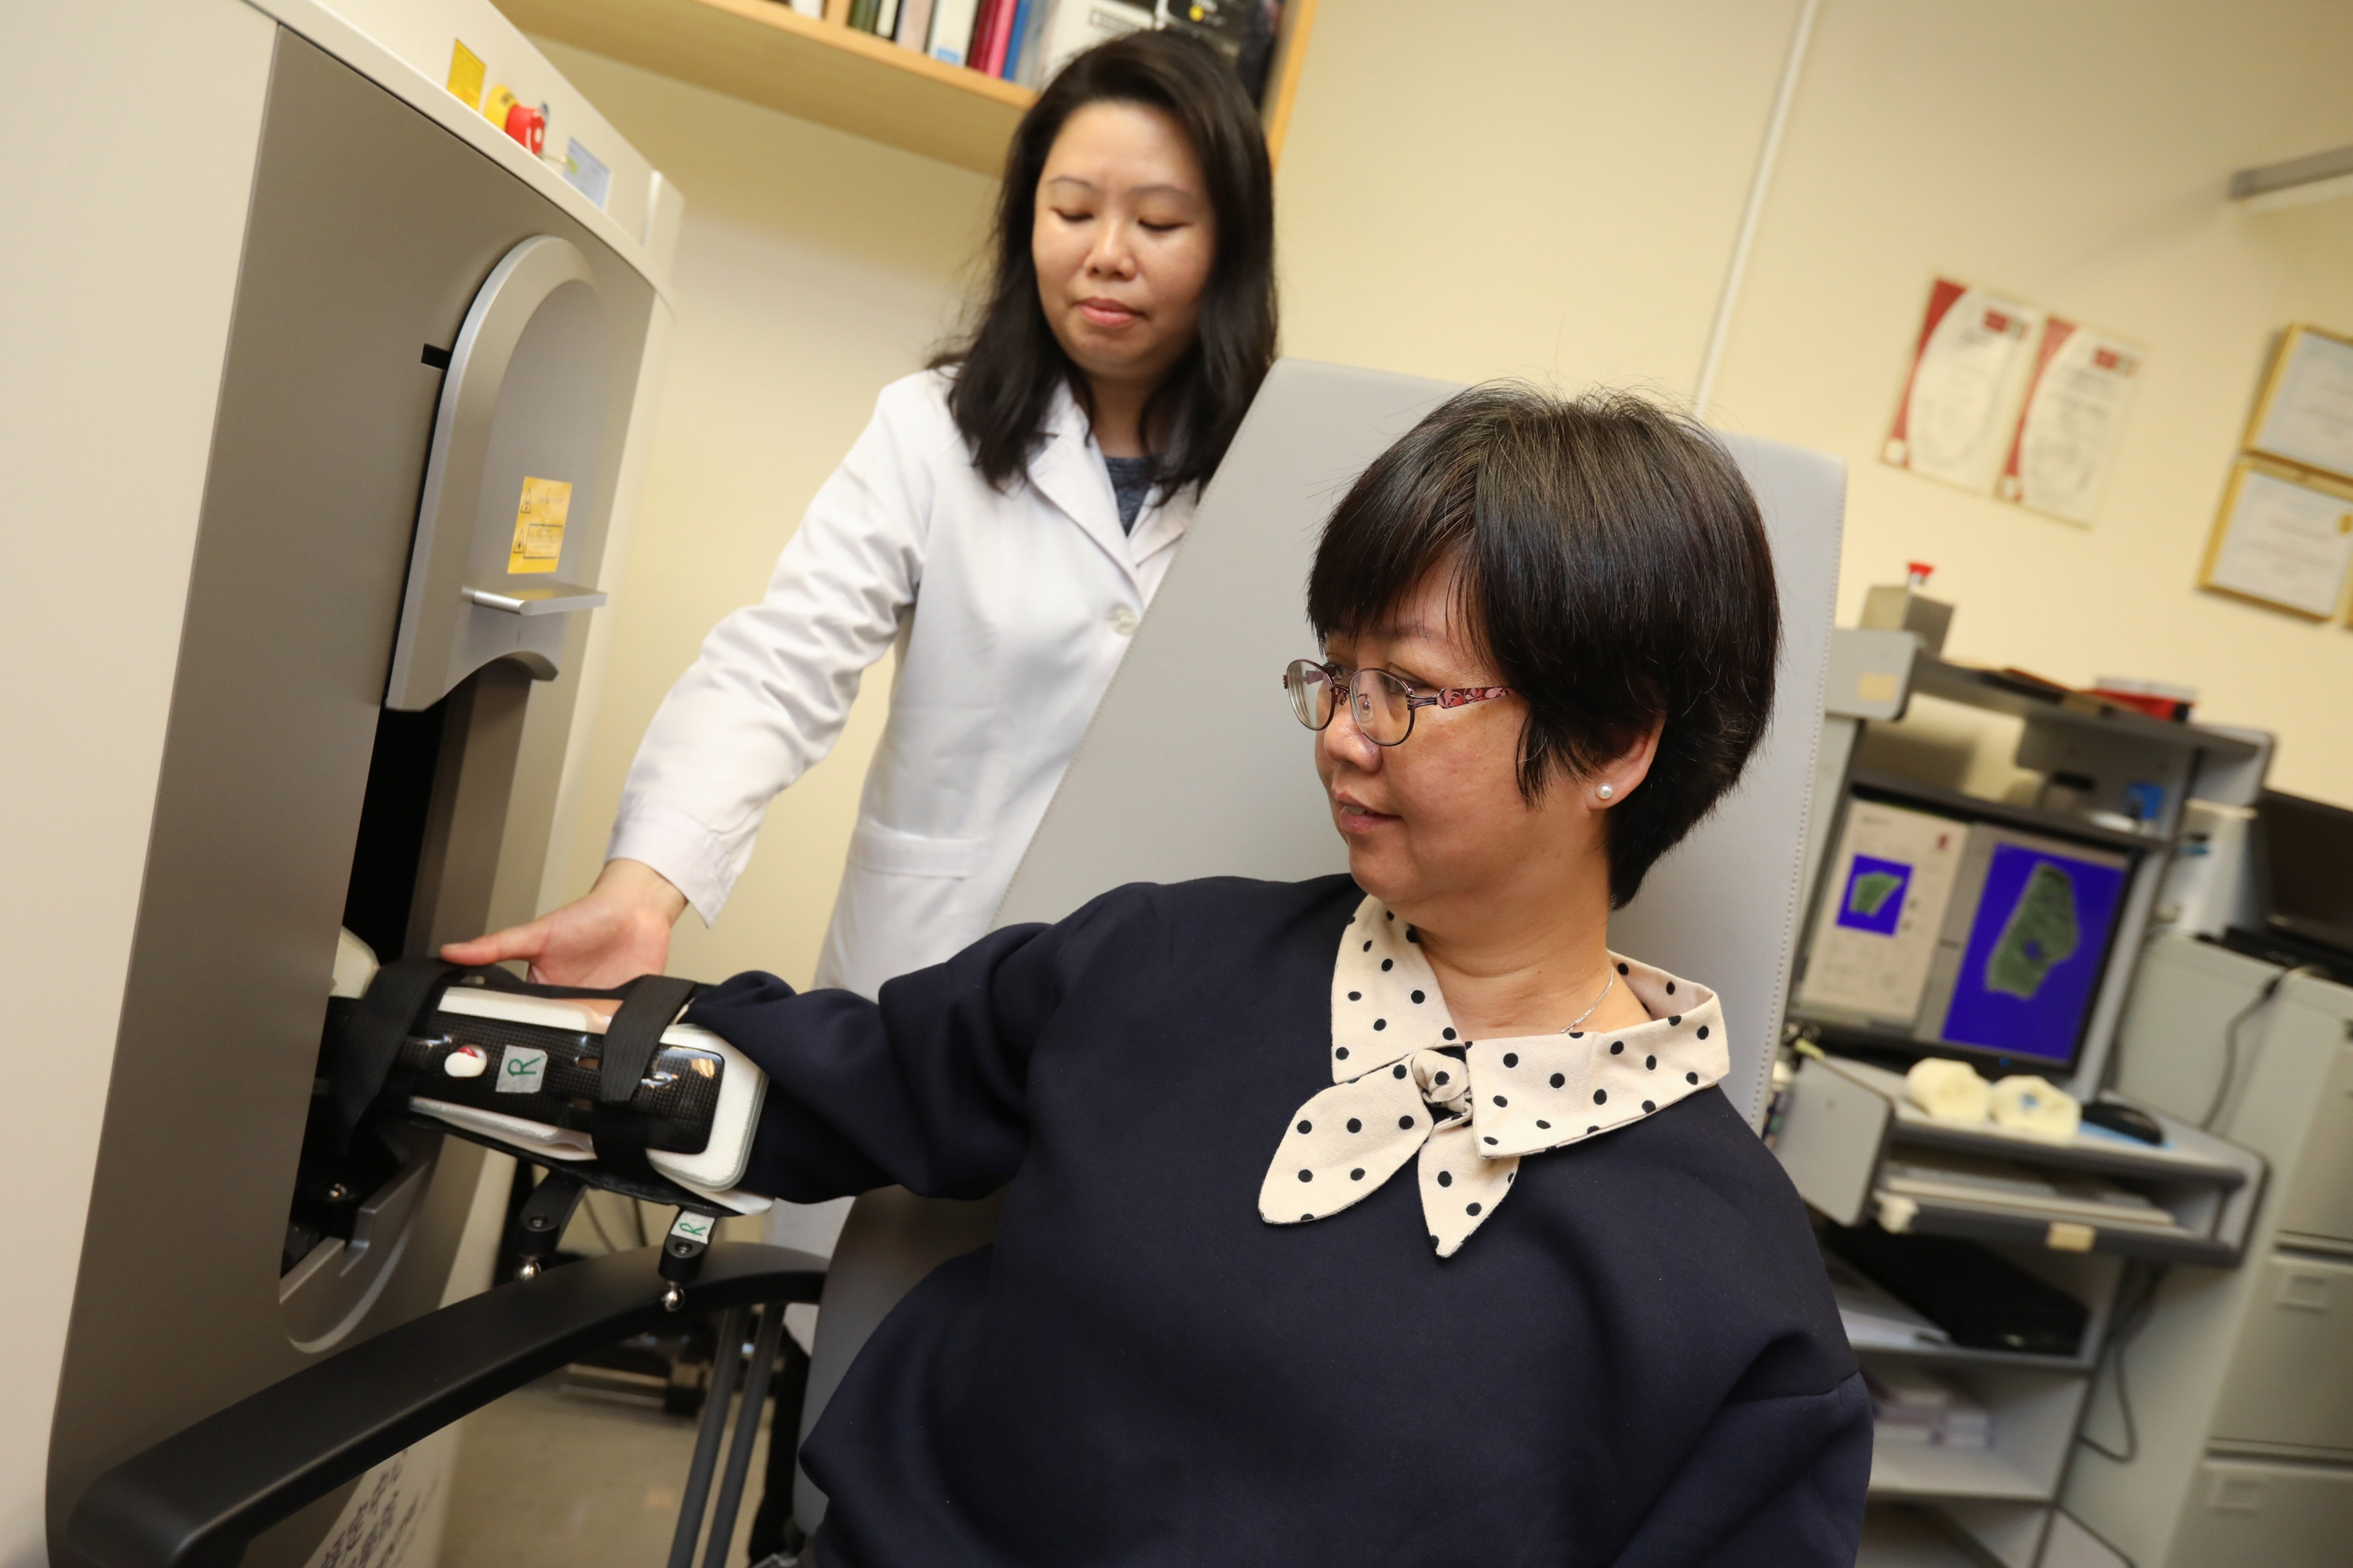 The 3D imaging device HR-pQCT can perform precise analysis of the bone micro-architecture and trabecular connectivity through scanning for calculating the bone strength. This photo shows the demonstration of HR-pQCT analysis on osteoporosis patient.